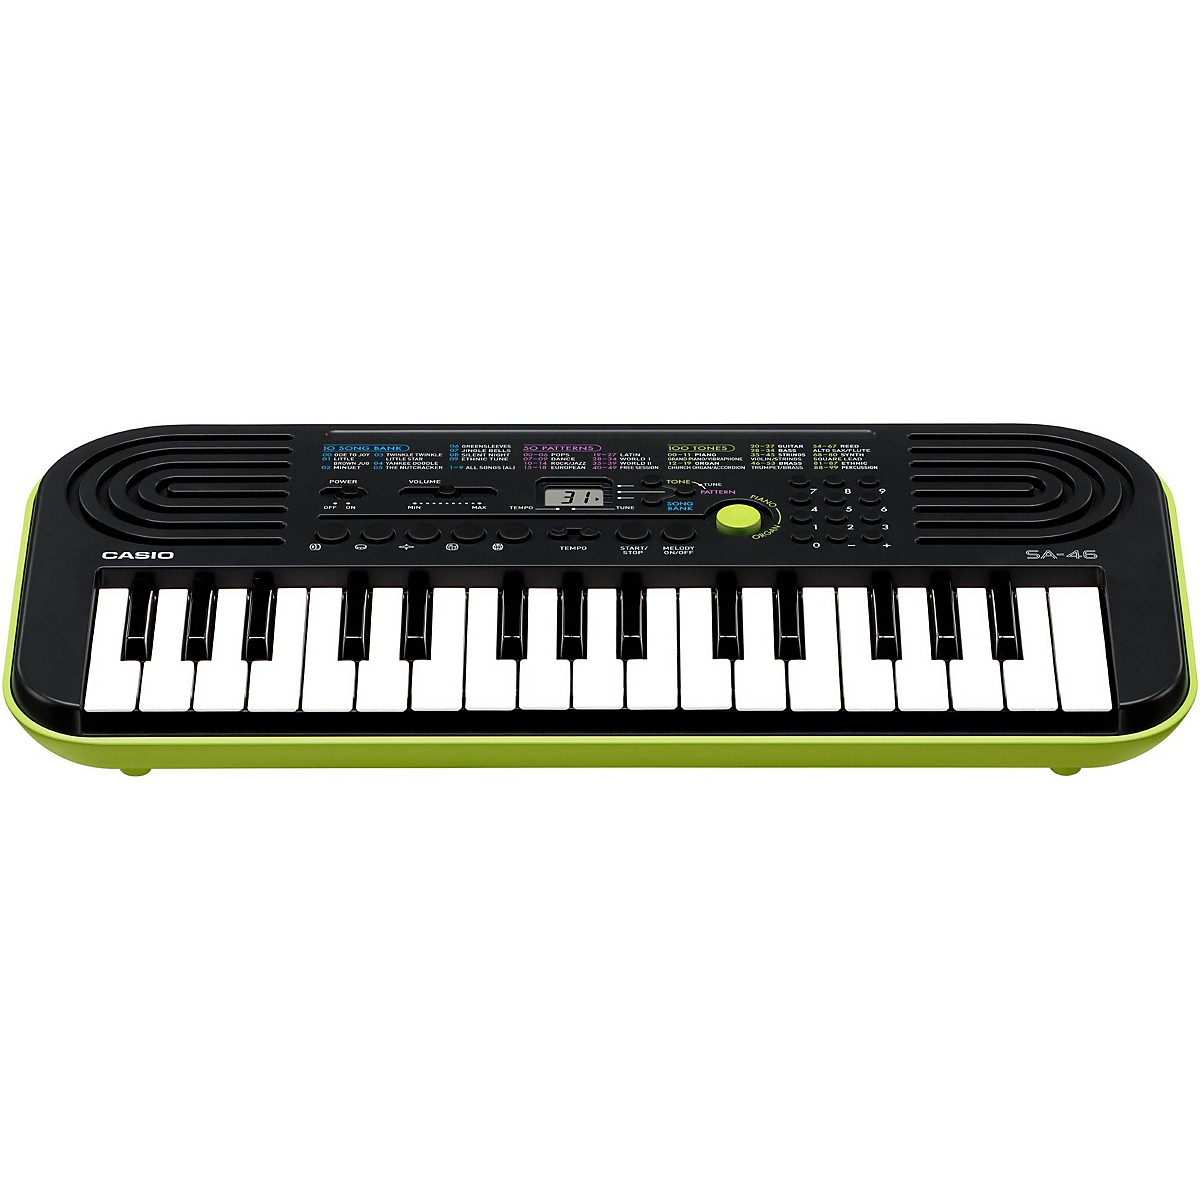 Casio SA-46 Mini Keyboard